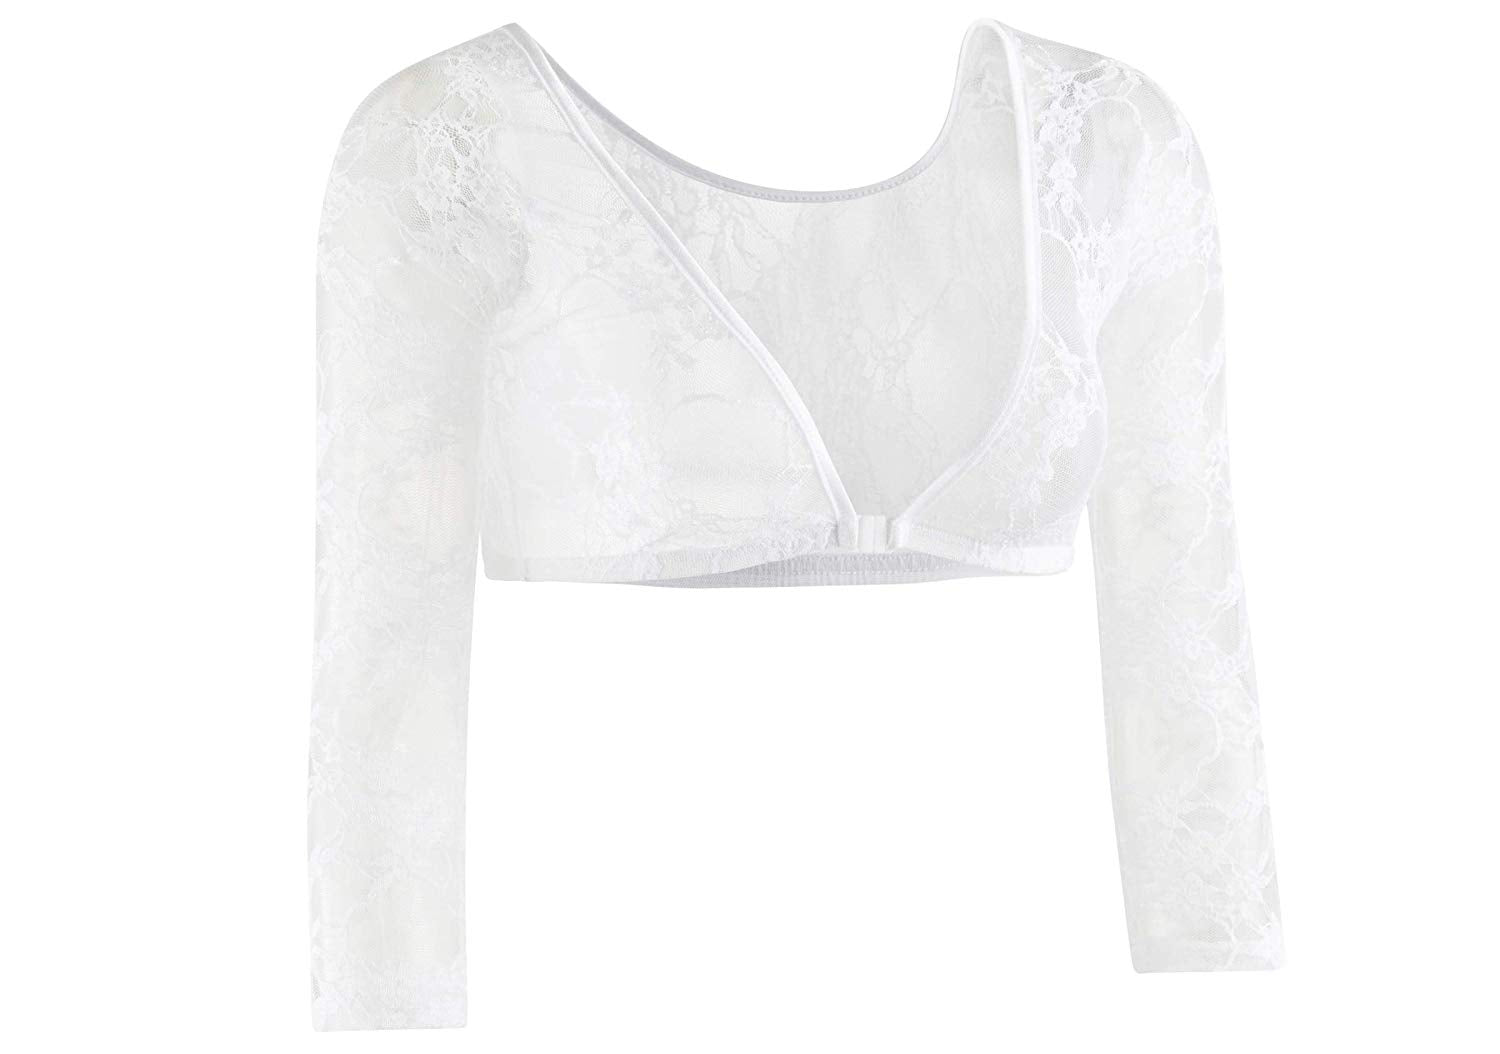 Half lace versatile clothing